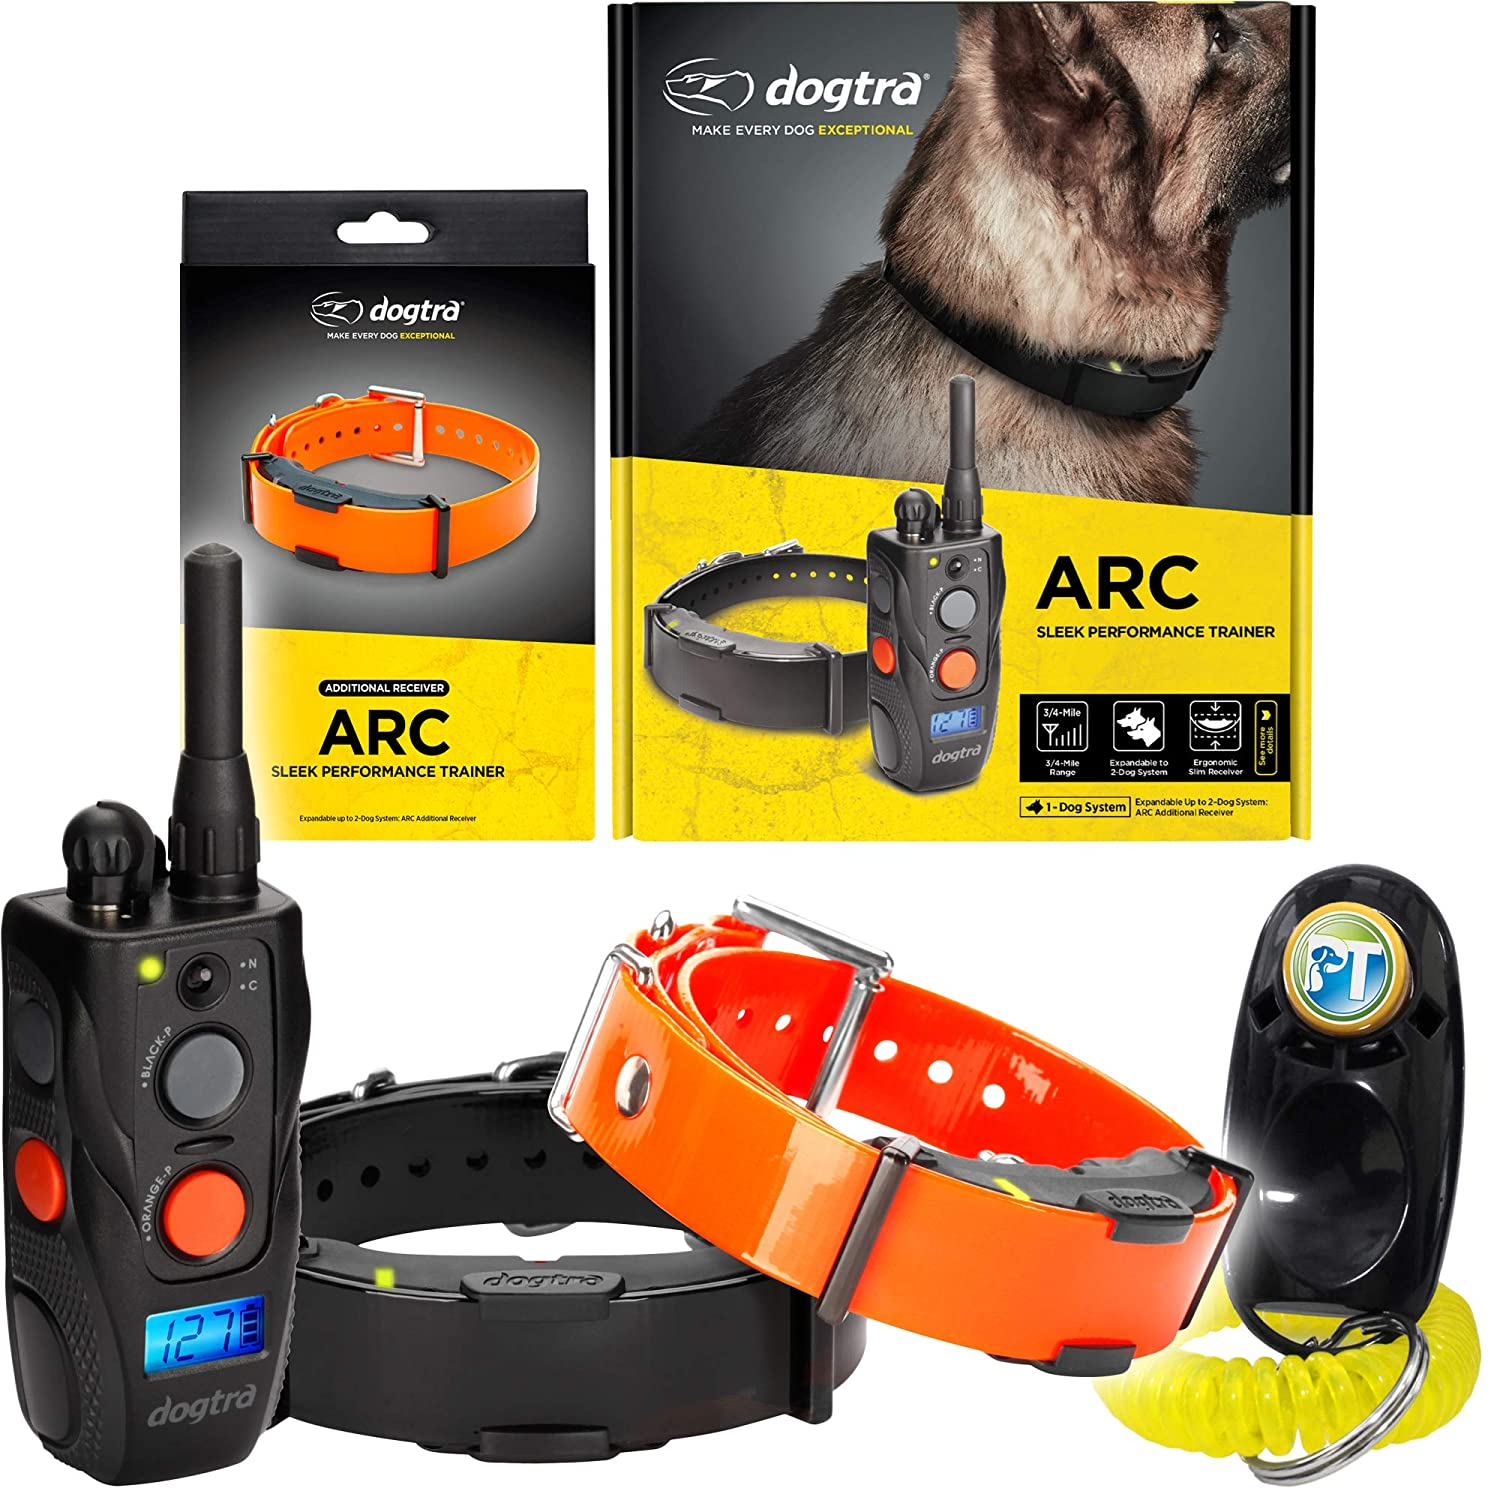 2 Dogs System ARC&RX Dogtra ARC Two Dogs Remote Training Collar 3 4 Mile Range, Waterproof, Rechargeable, Shock, Vibration Includes PetsTEK Dog Training Clicker